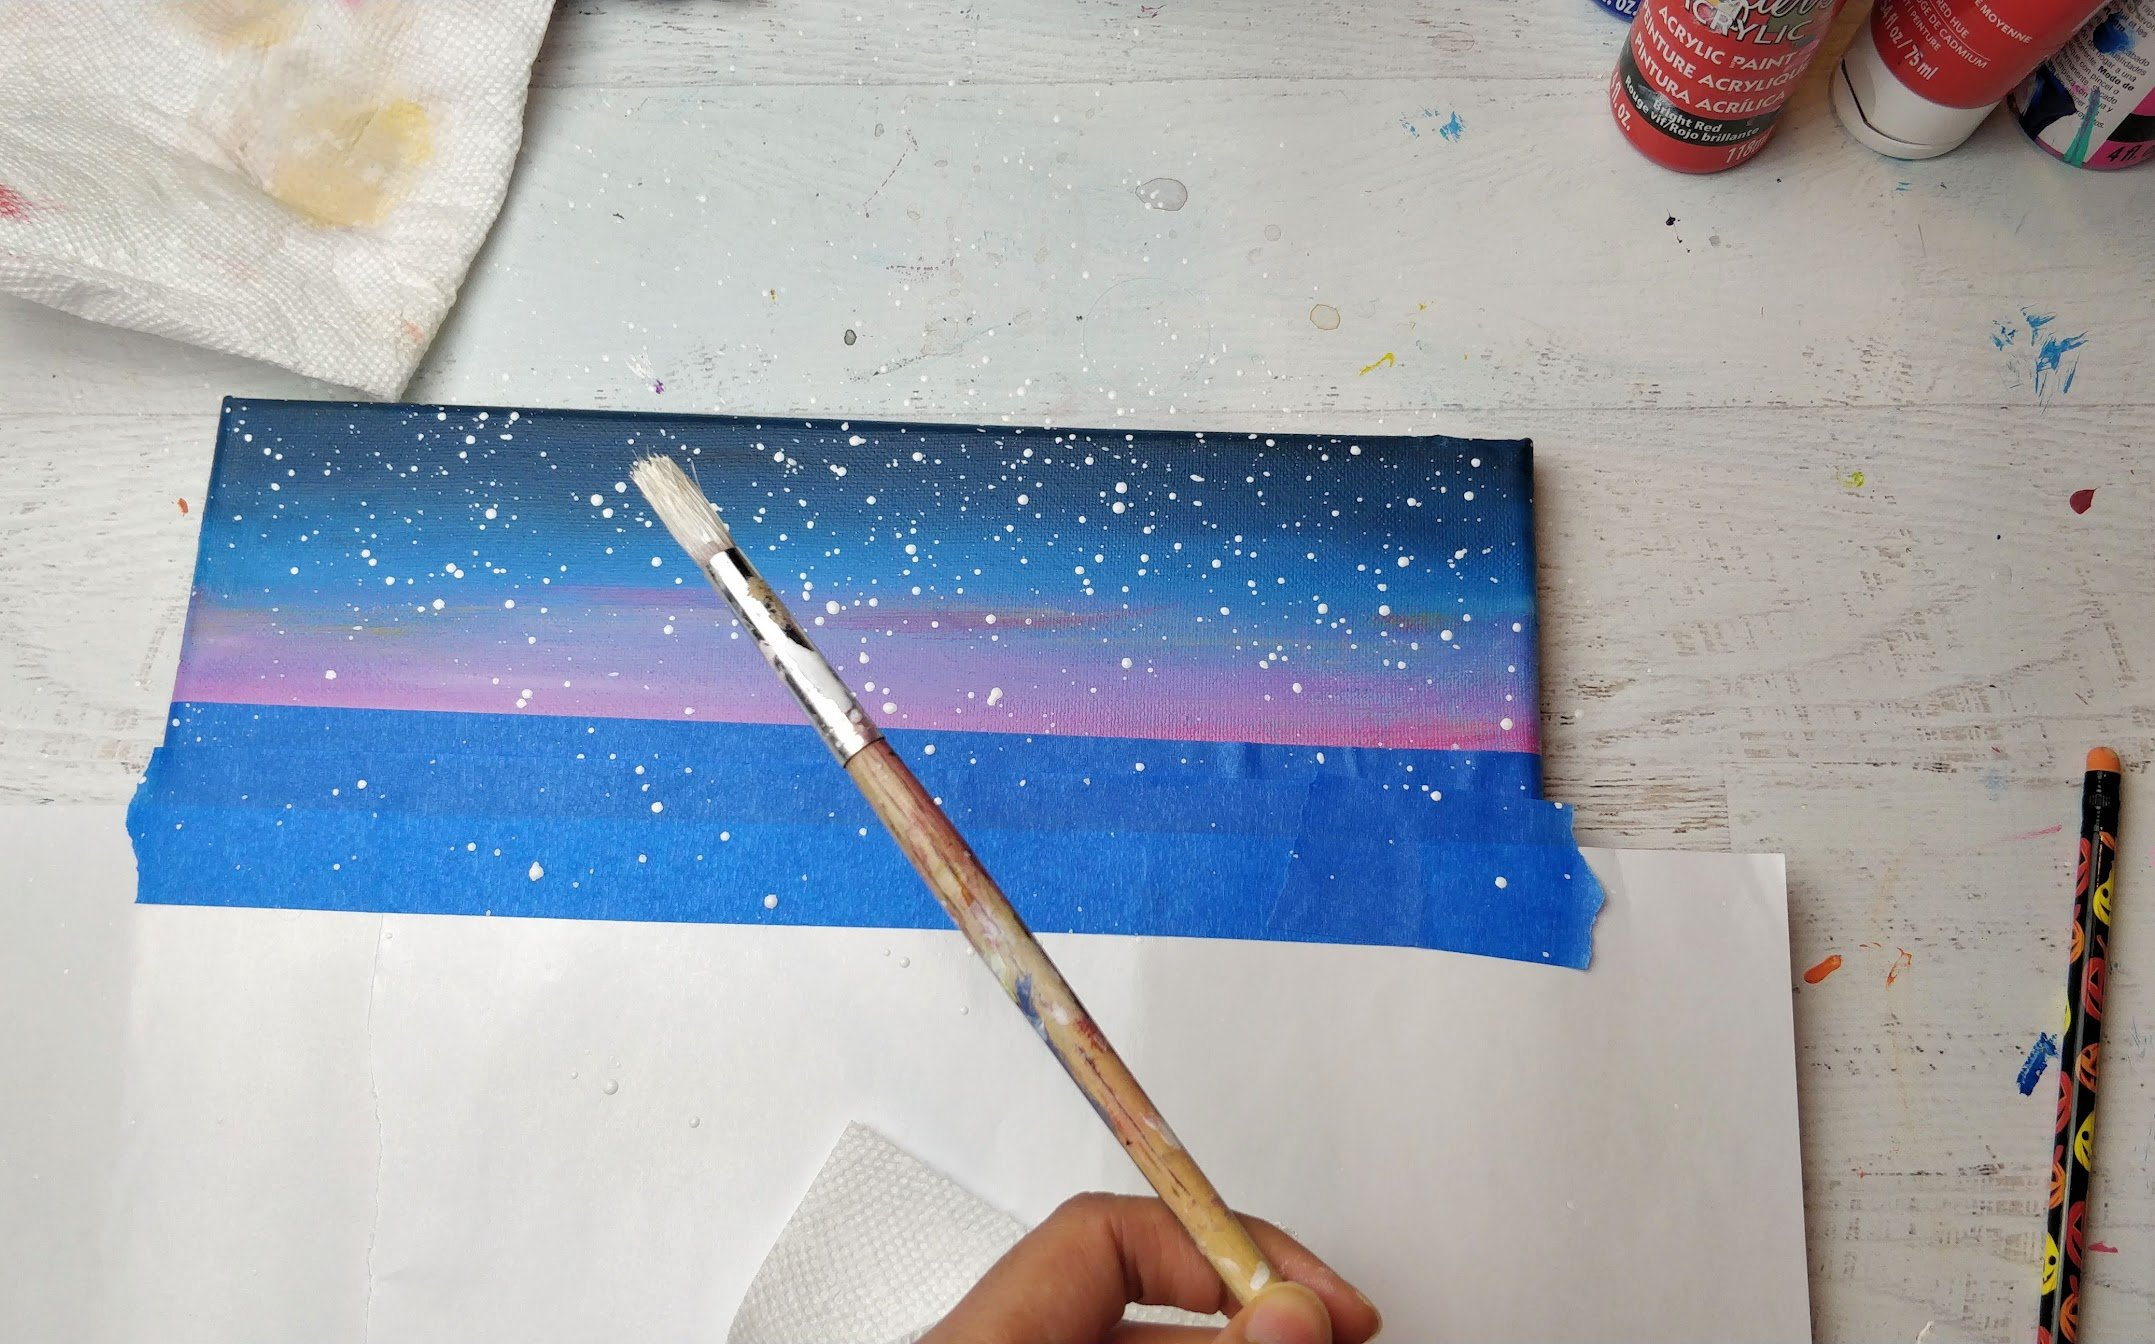 acrylic sky how to paint stars